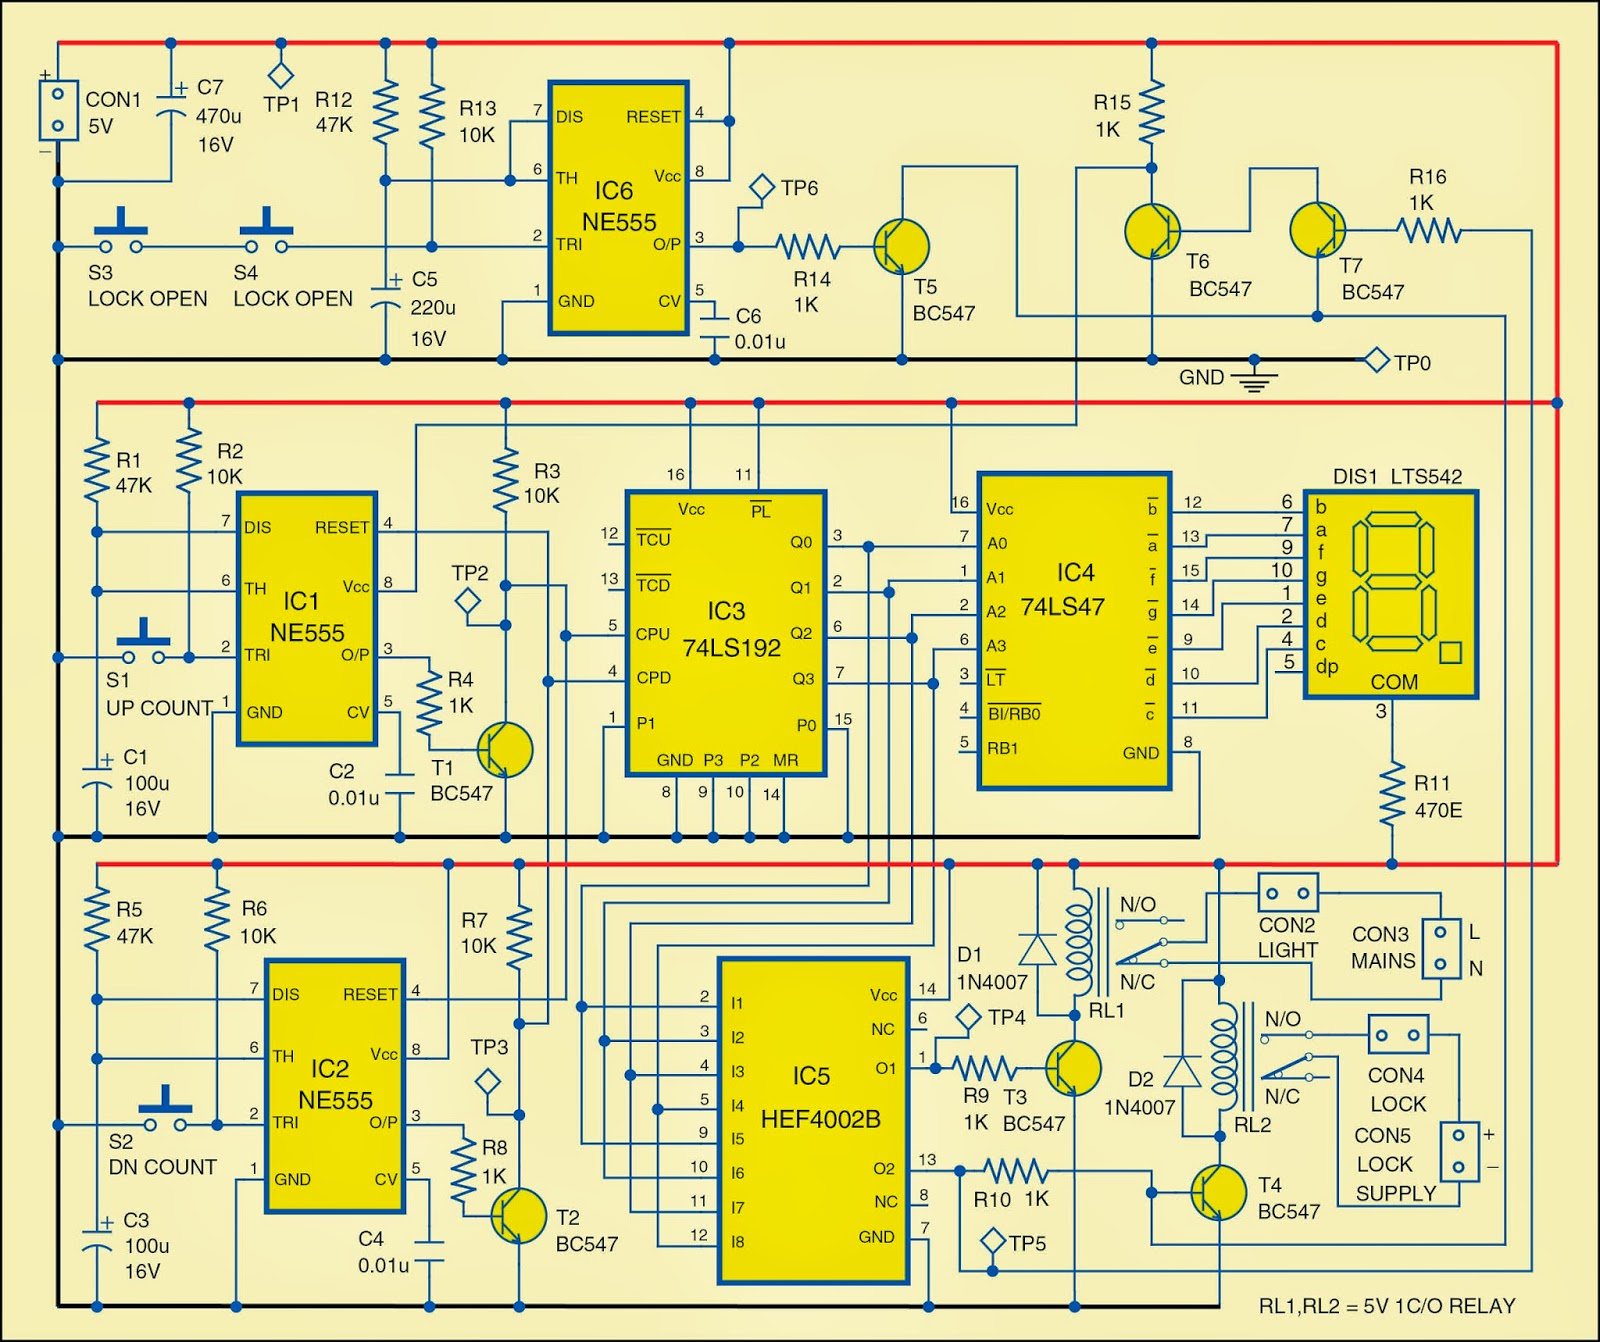 Lights Wiring Diagram Two Rooms Electrical Diagrams Likewise Led Christmas Light Circuit On Room Basic Electric Air Switch 2